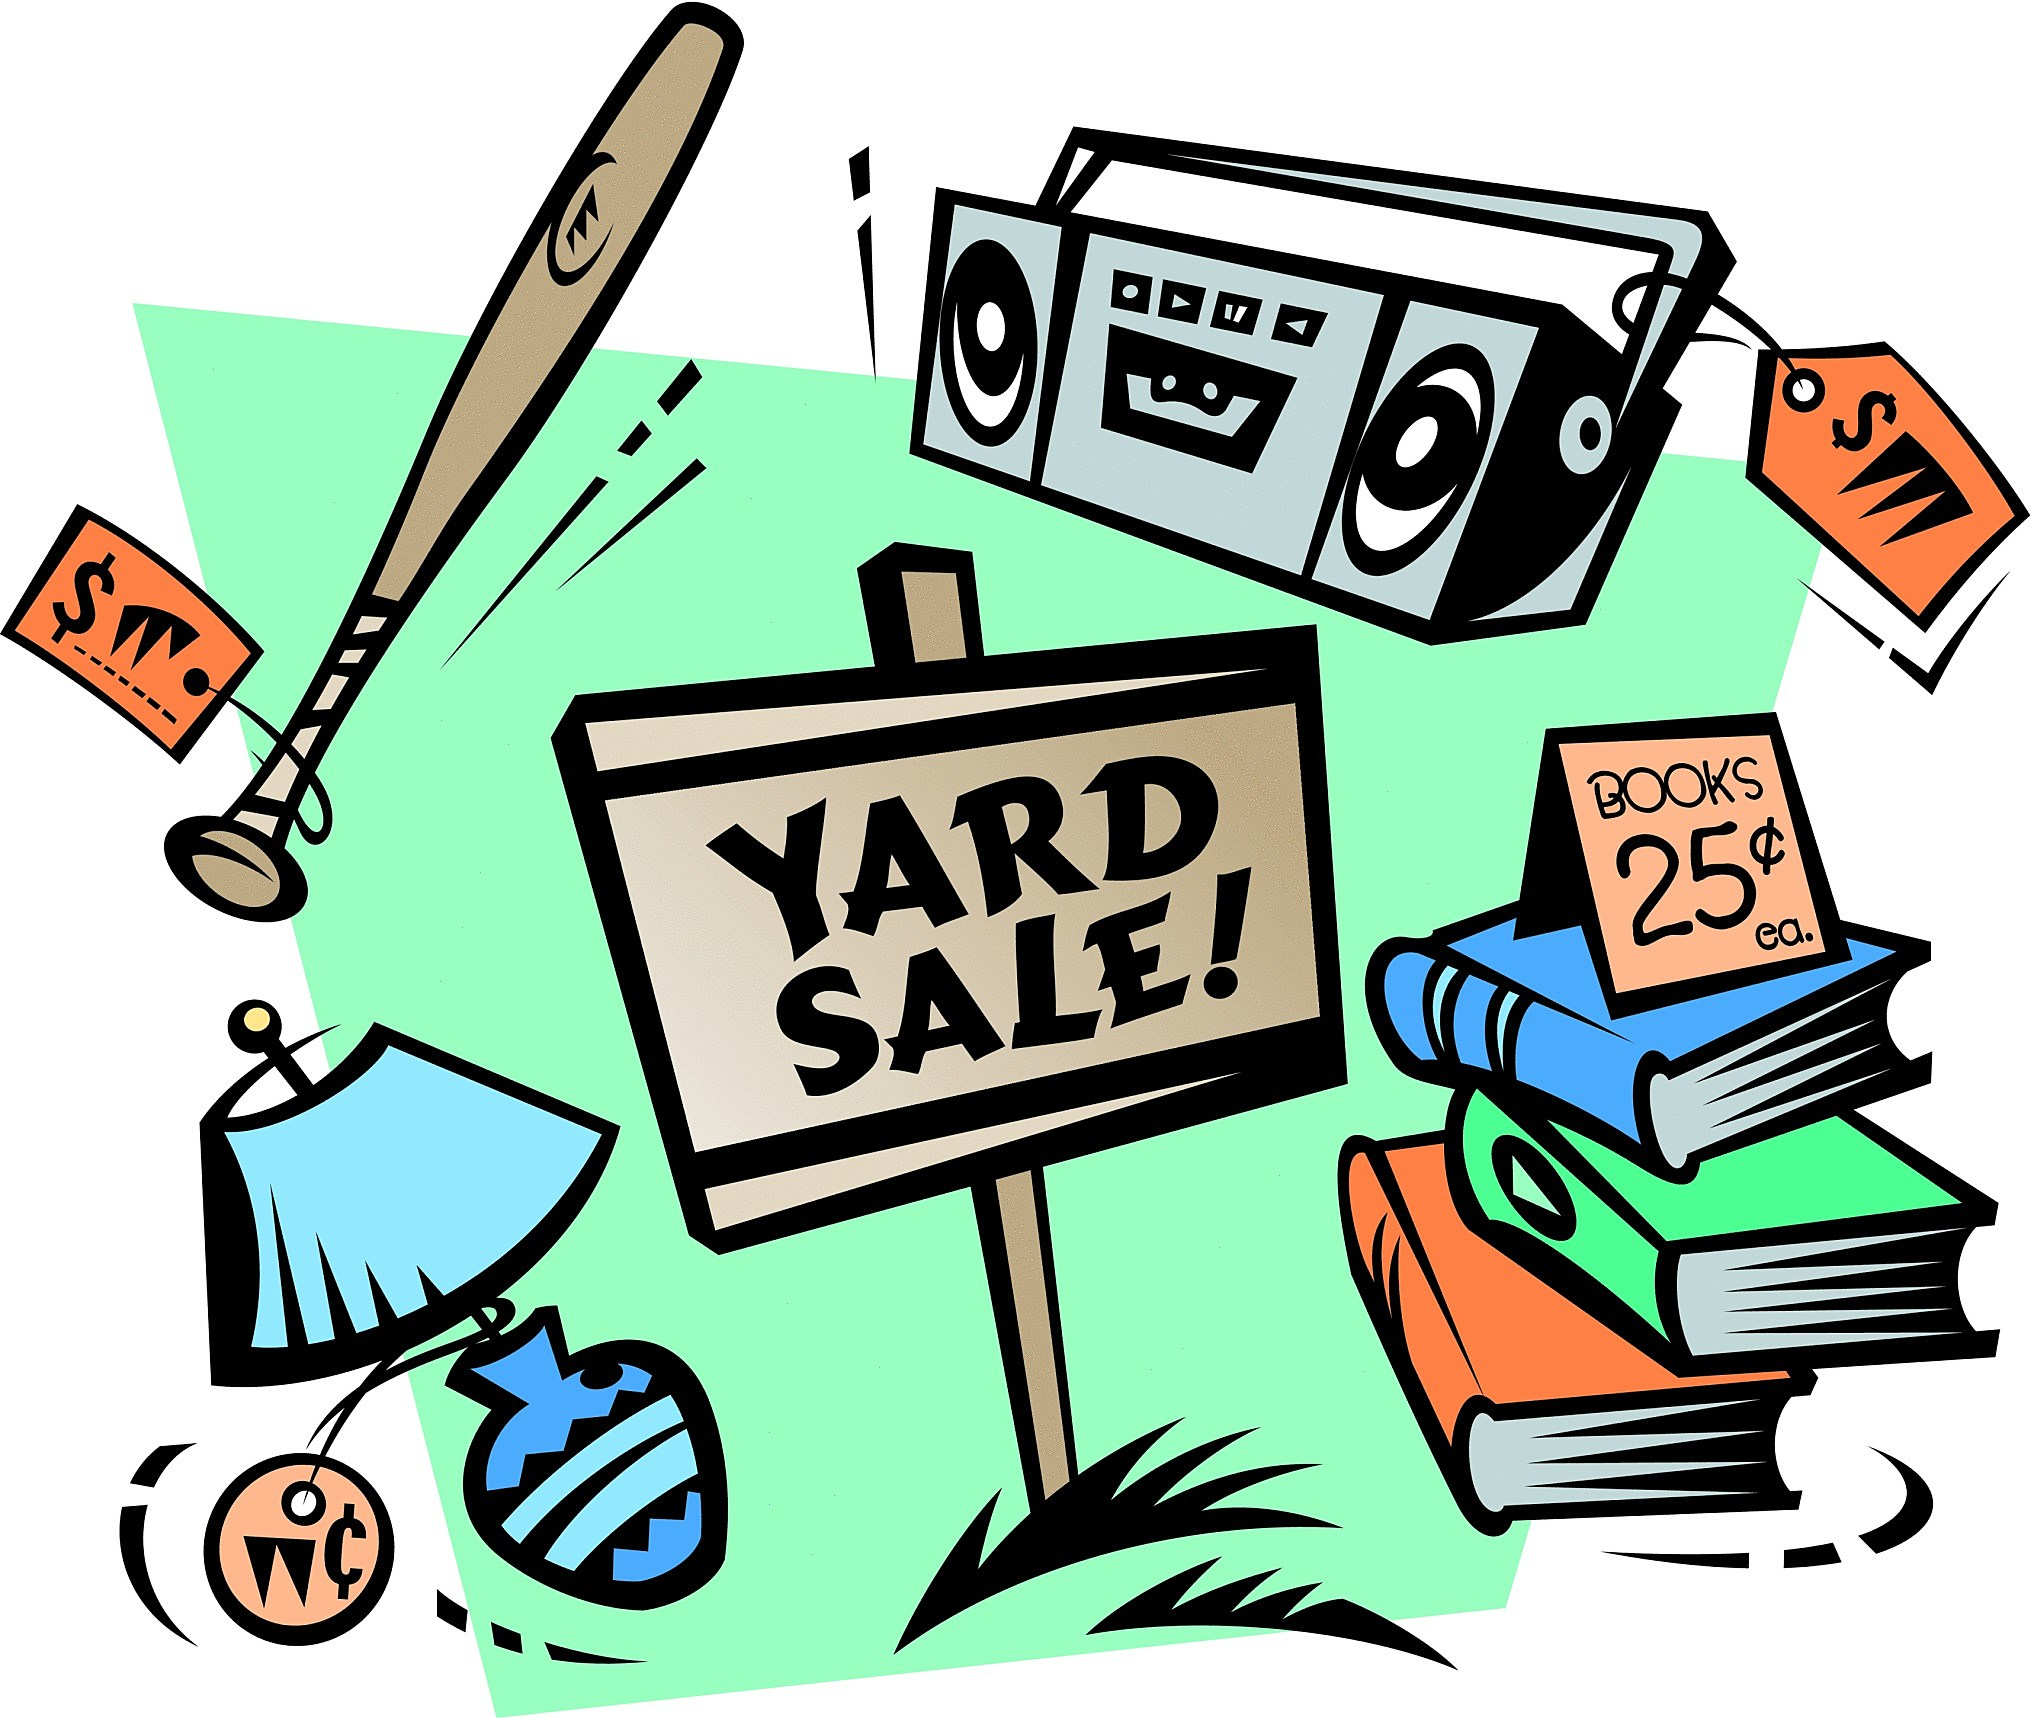 2034x1718 Yard Sales! Tips To Make Yours Awesome!